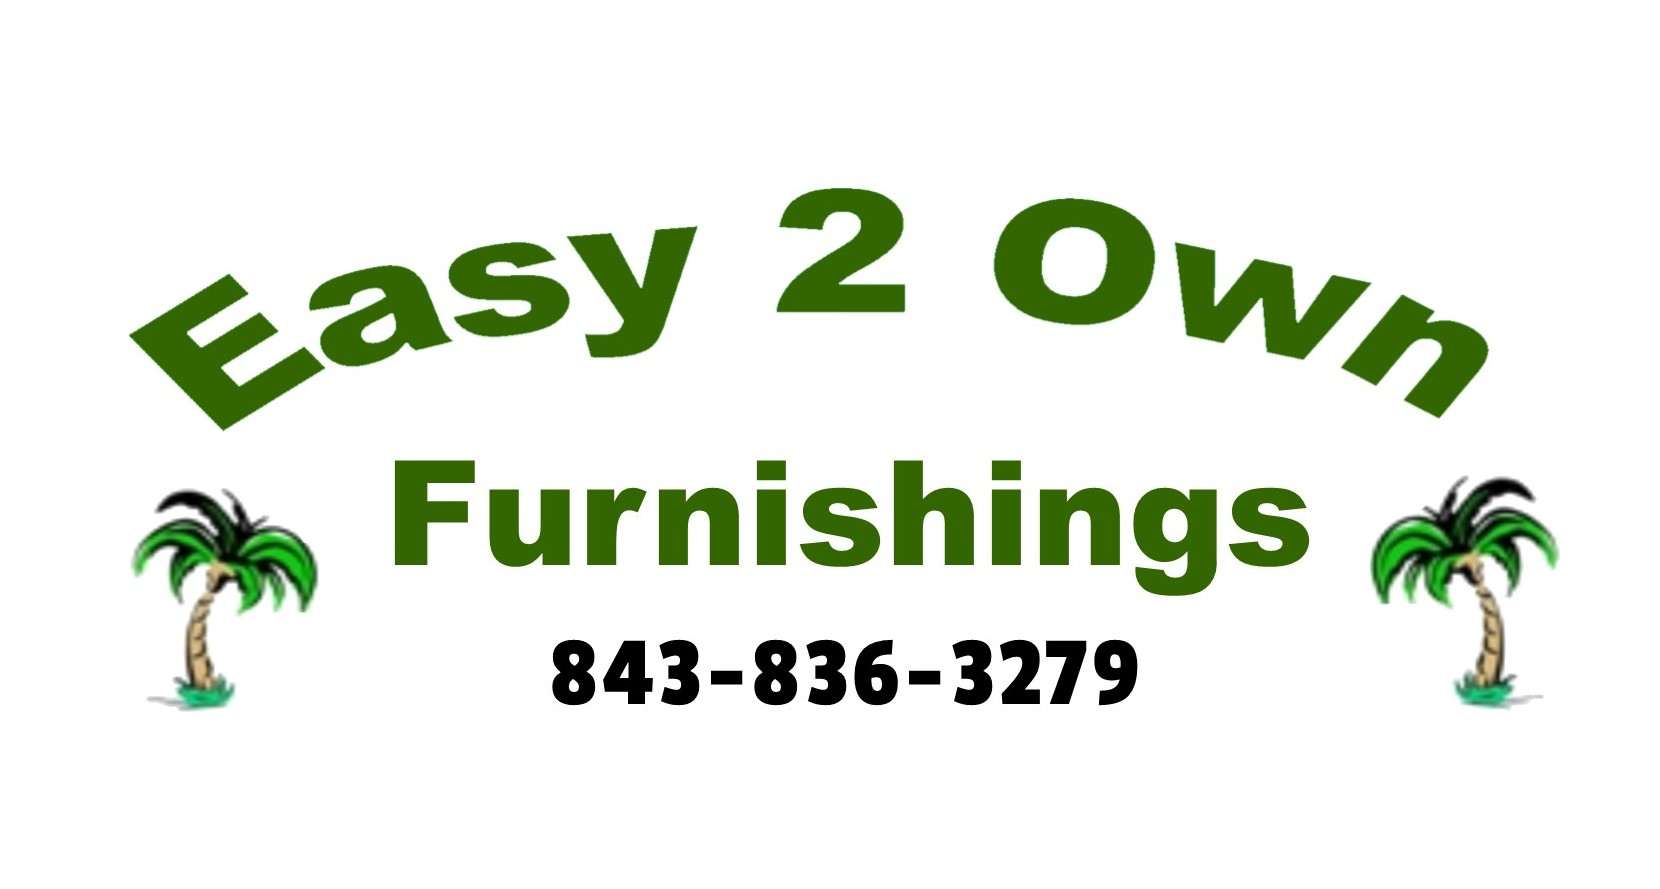 Easy 2 Own Furnishings 843.836.3279 Mobile Retina Logo